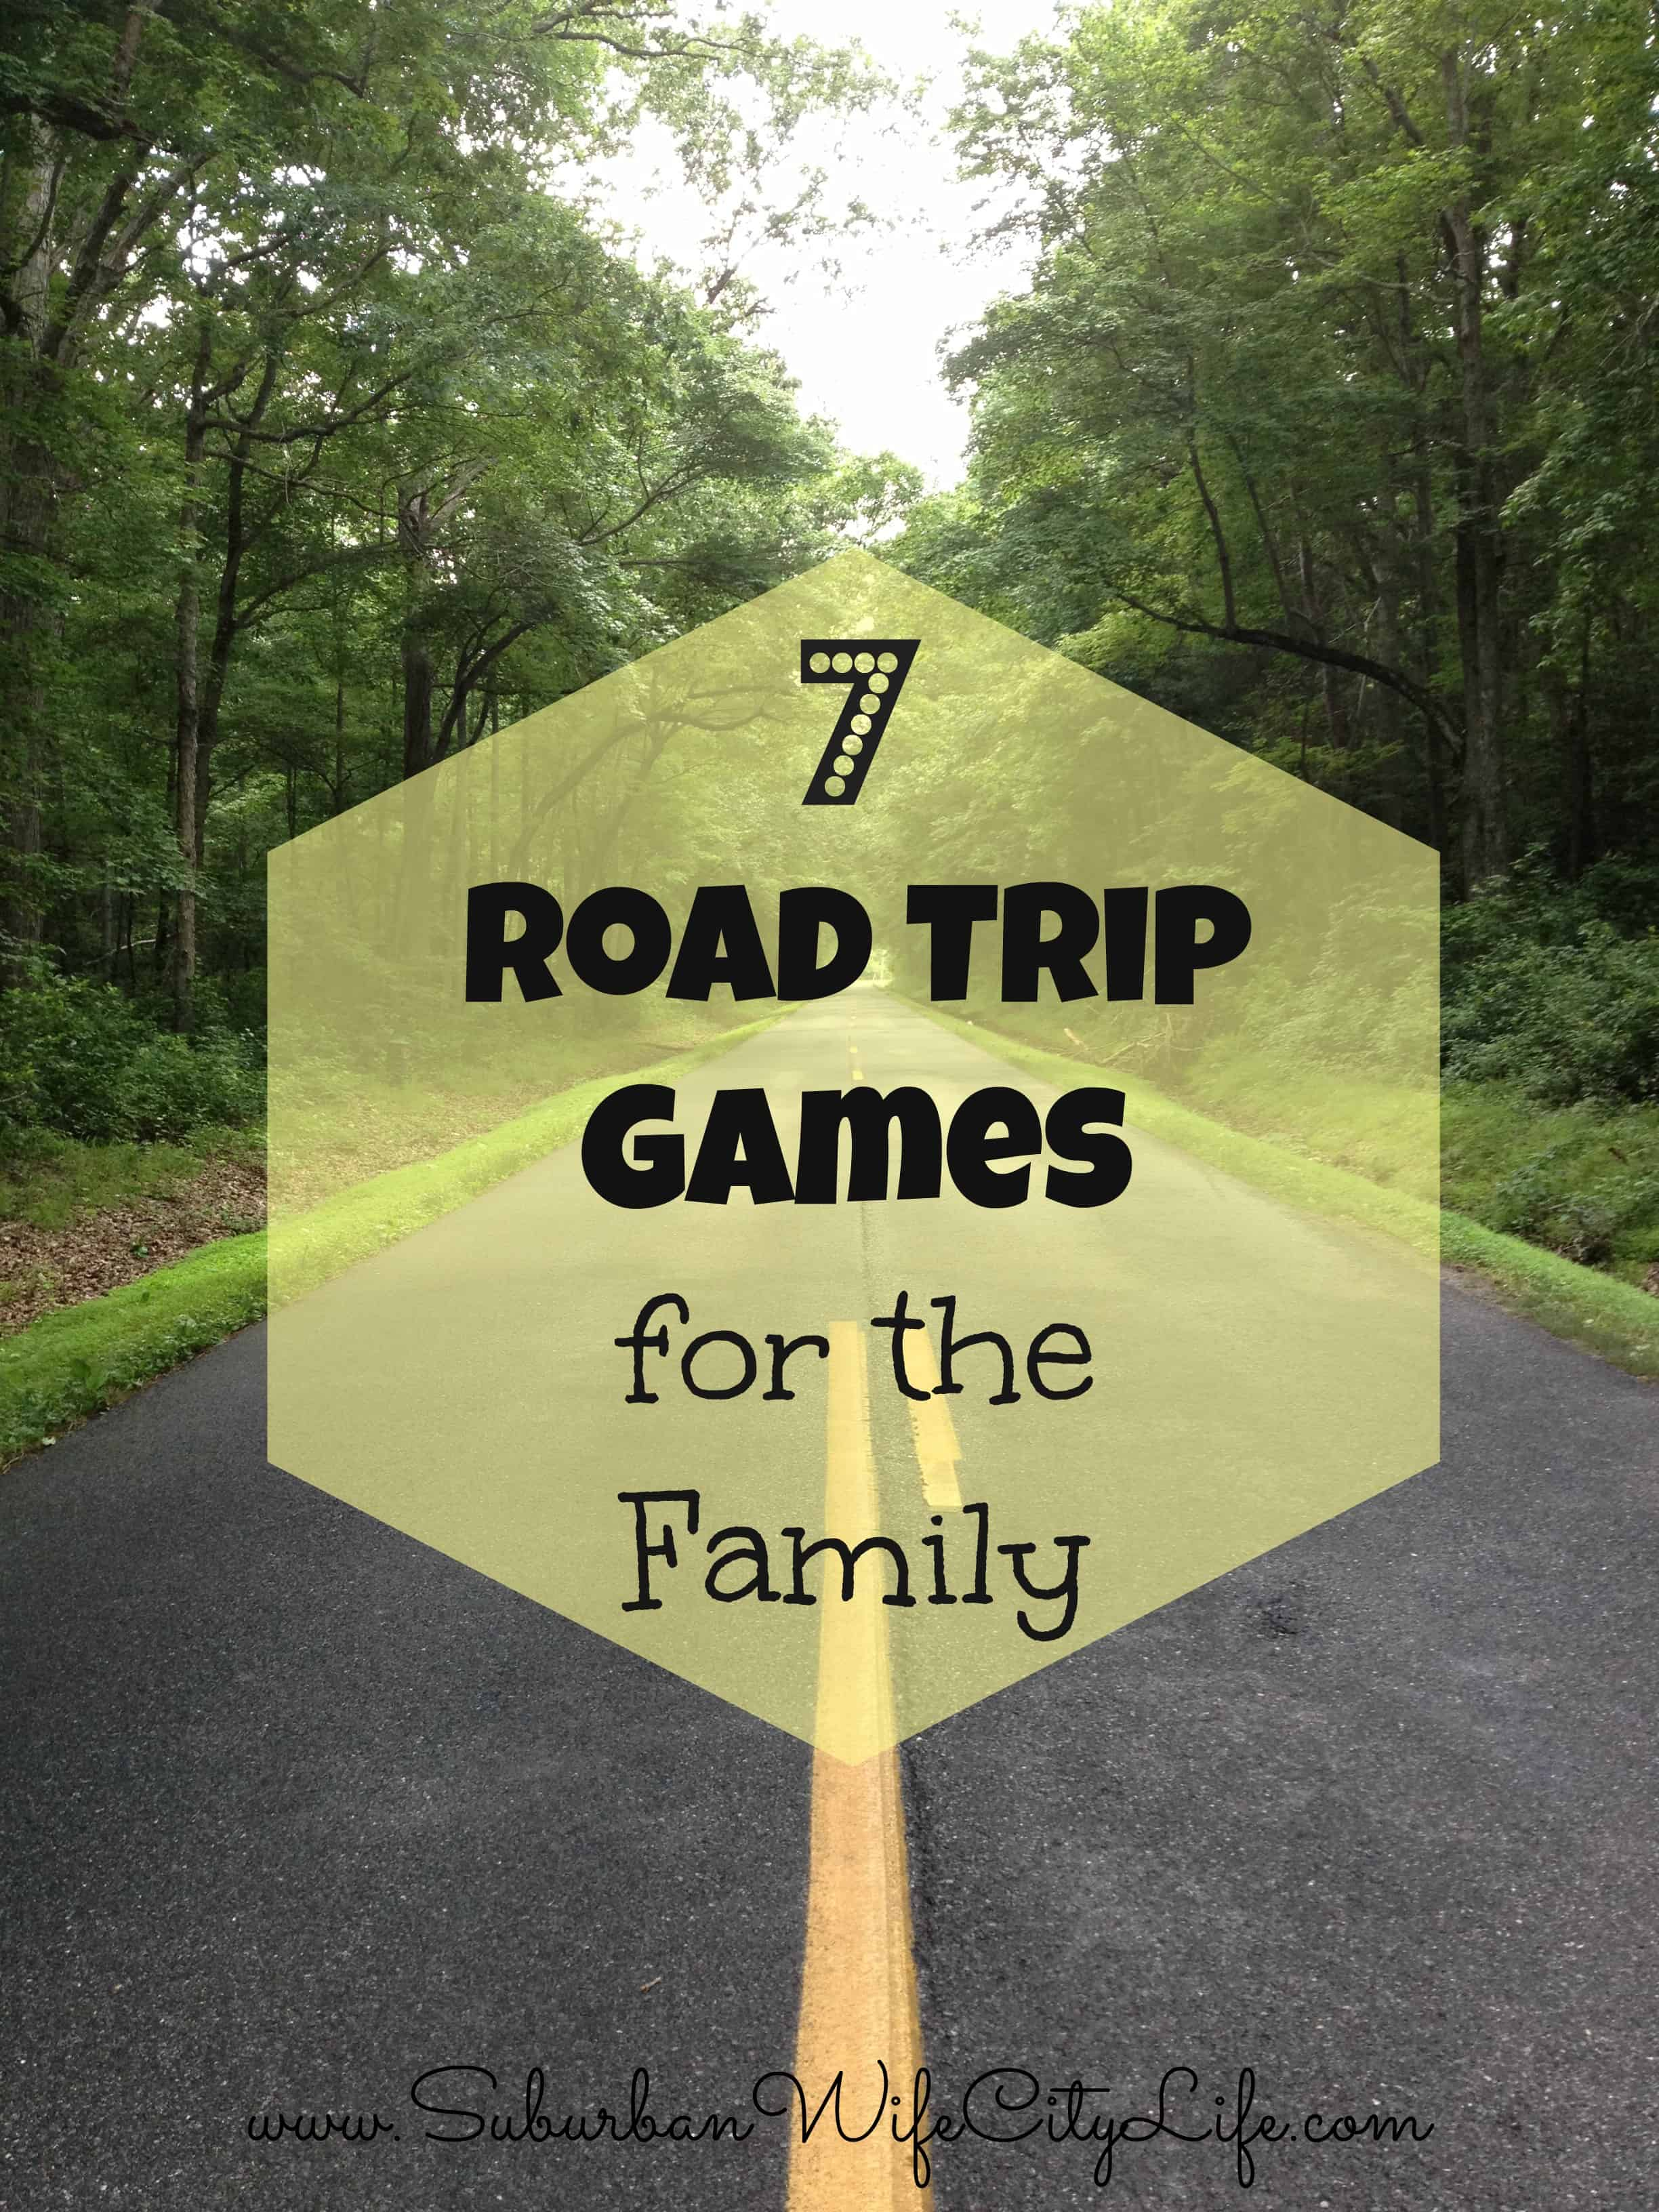 7 Road Trip Games for the Family